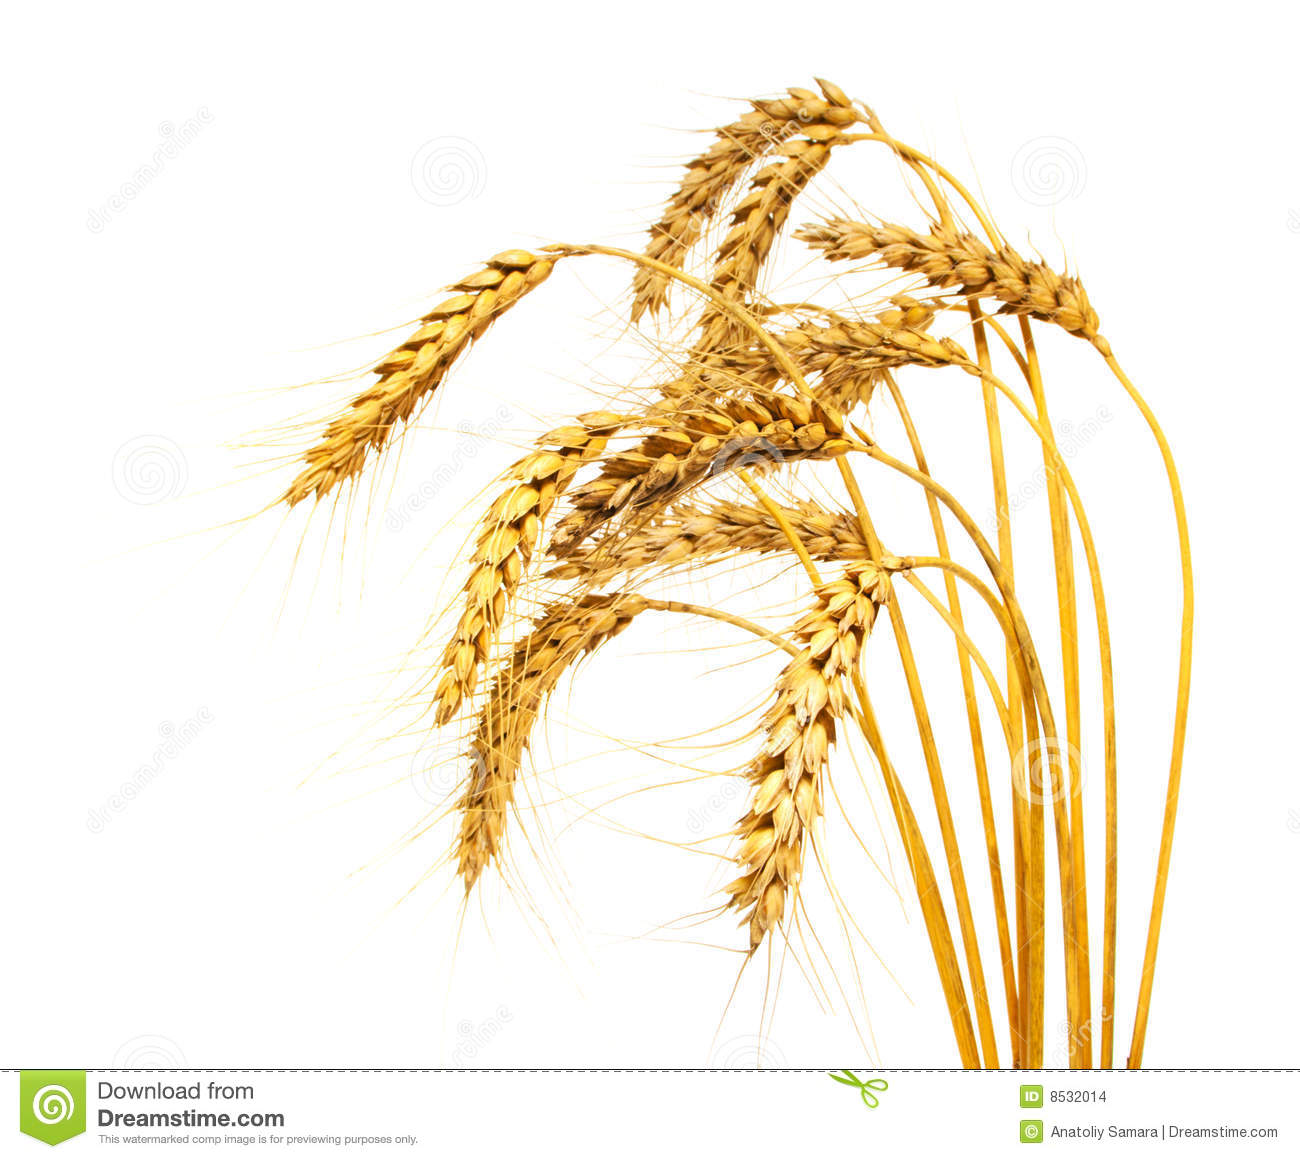 Wheat plant clipart 4 » Clipart Station.